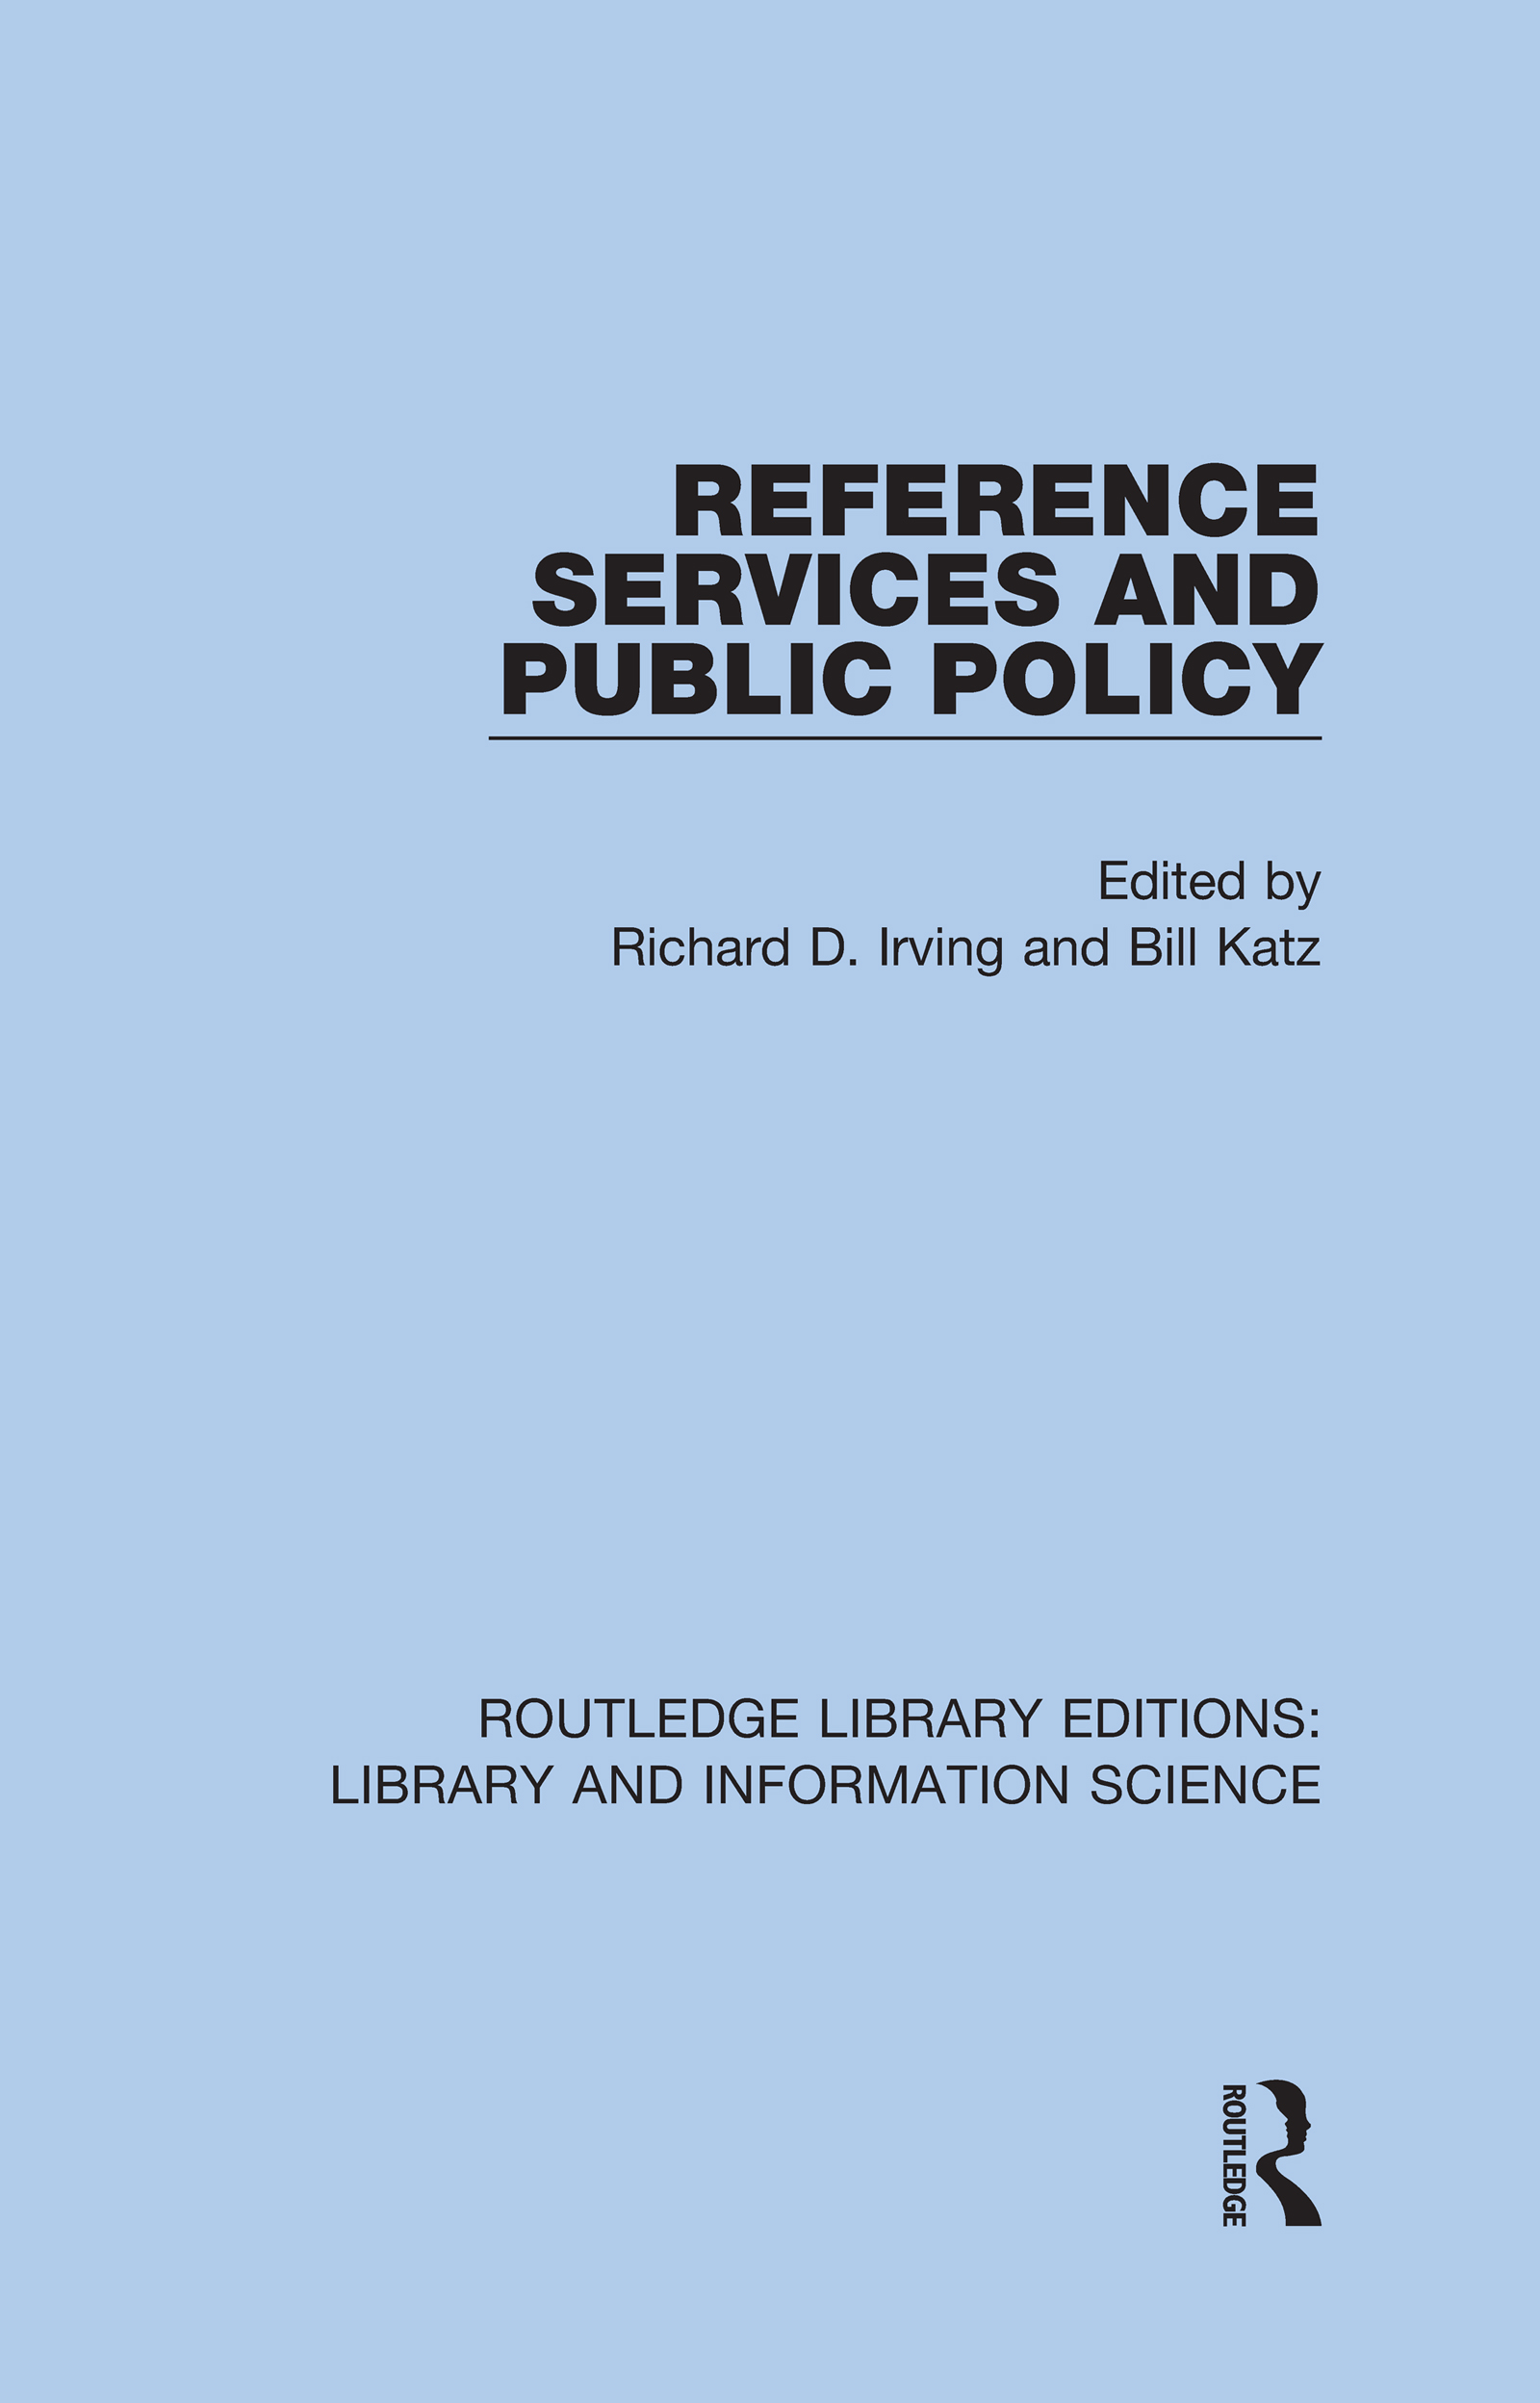 Reference Services and Public Policy